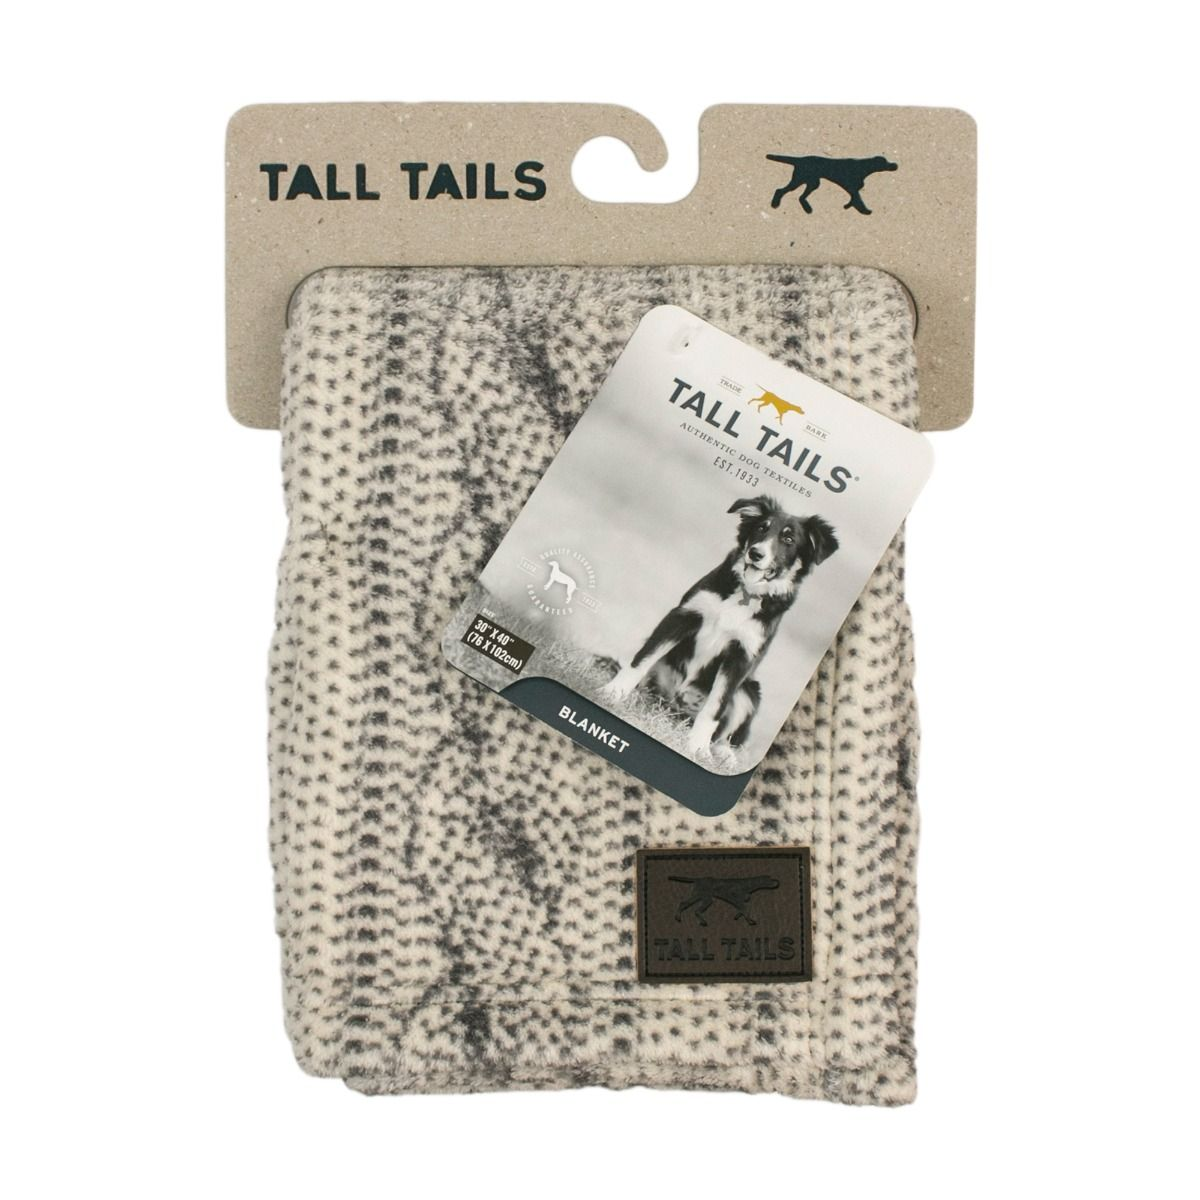 TALL TAILS CABLE KNIT PRINT BLANKET